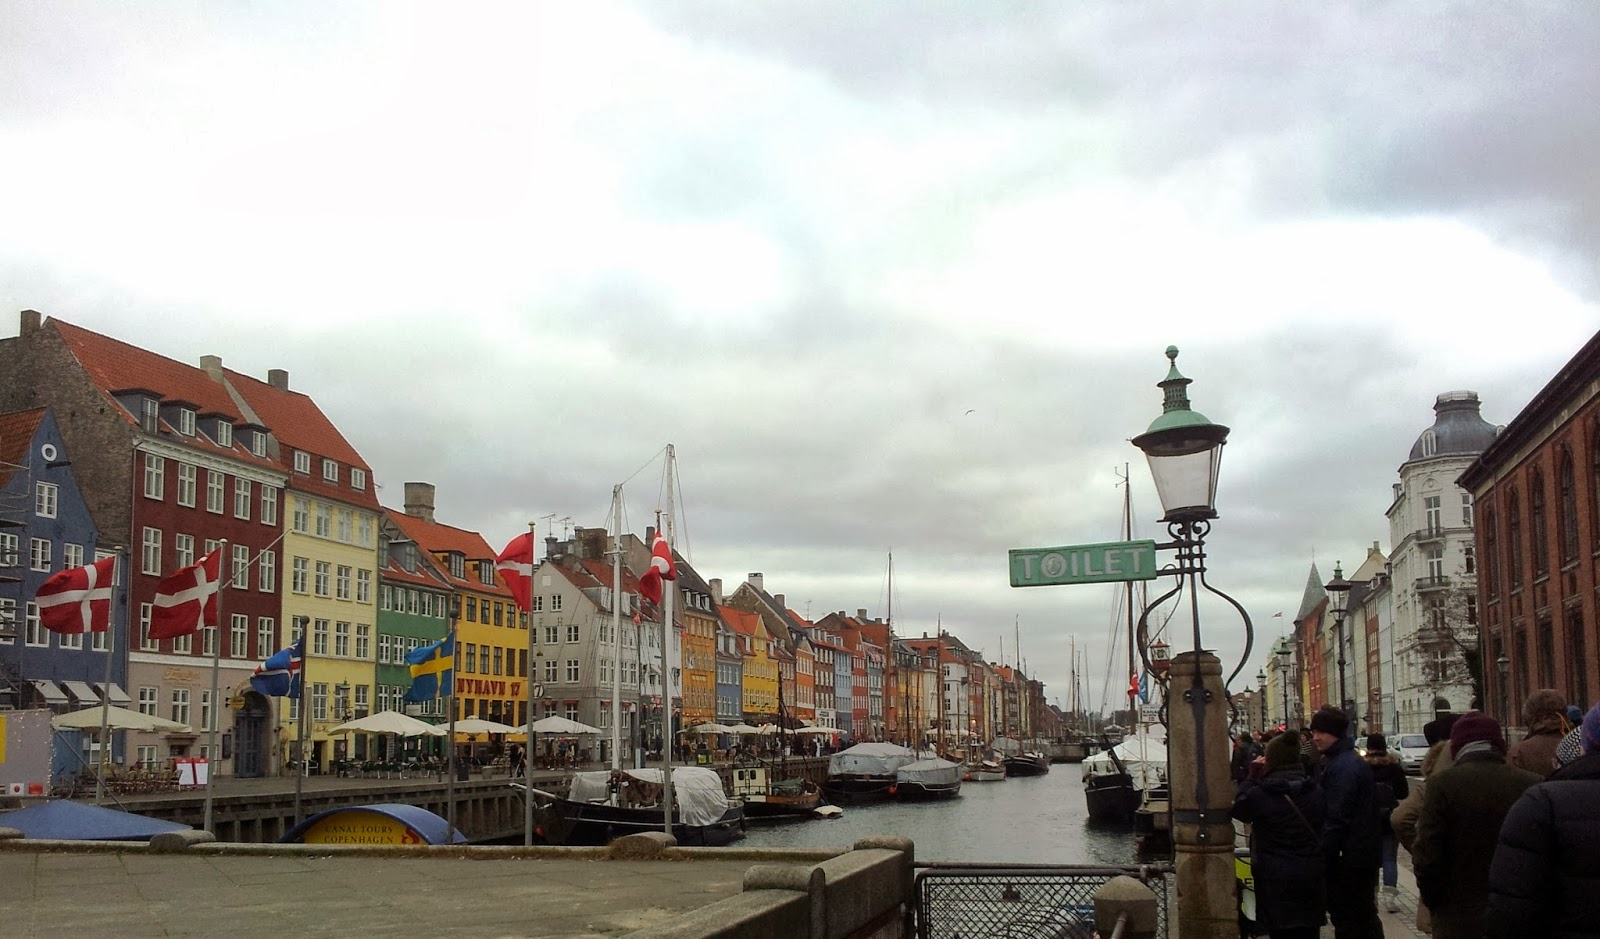 Nyhavn New Harbour in Copenhagen